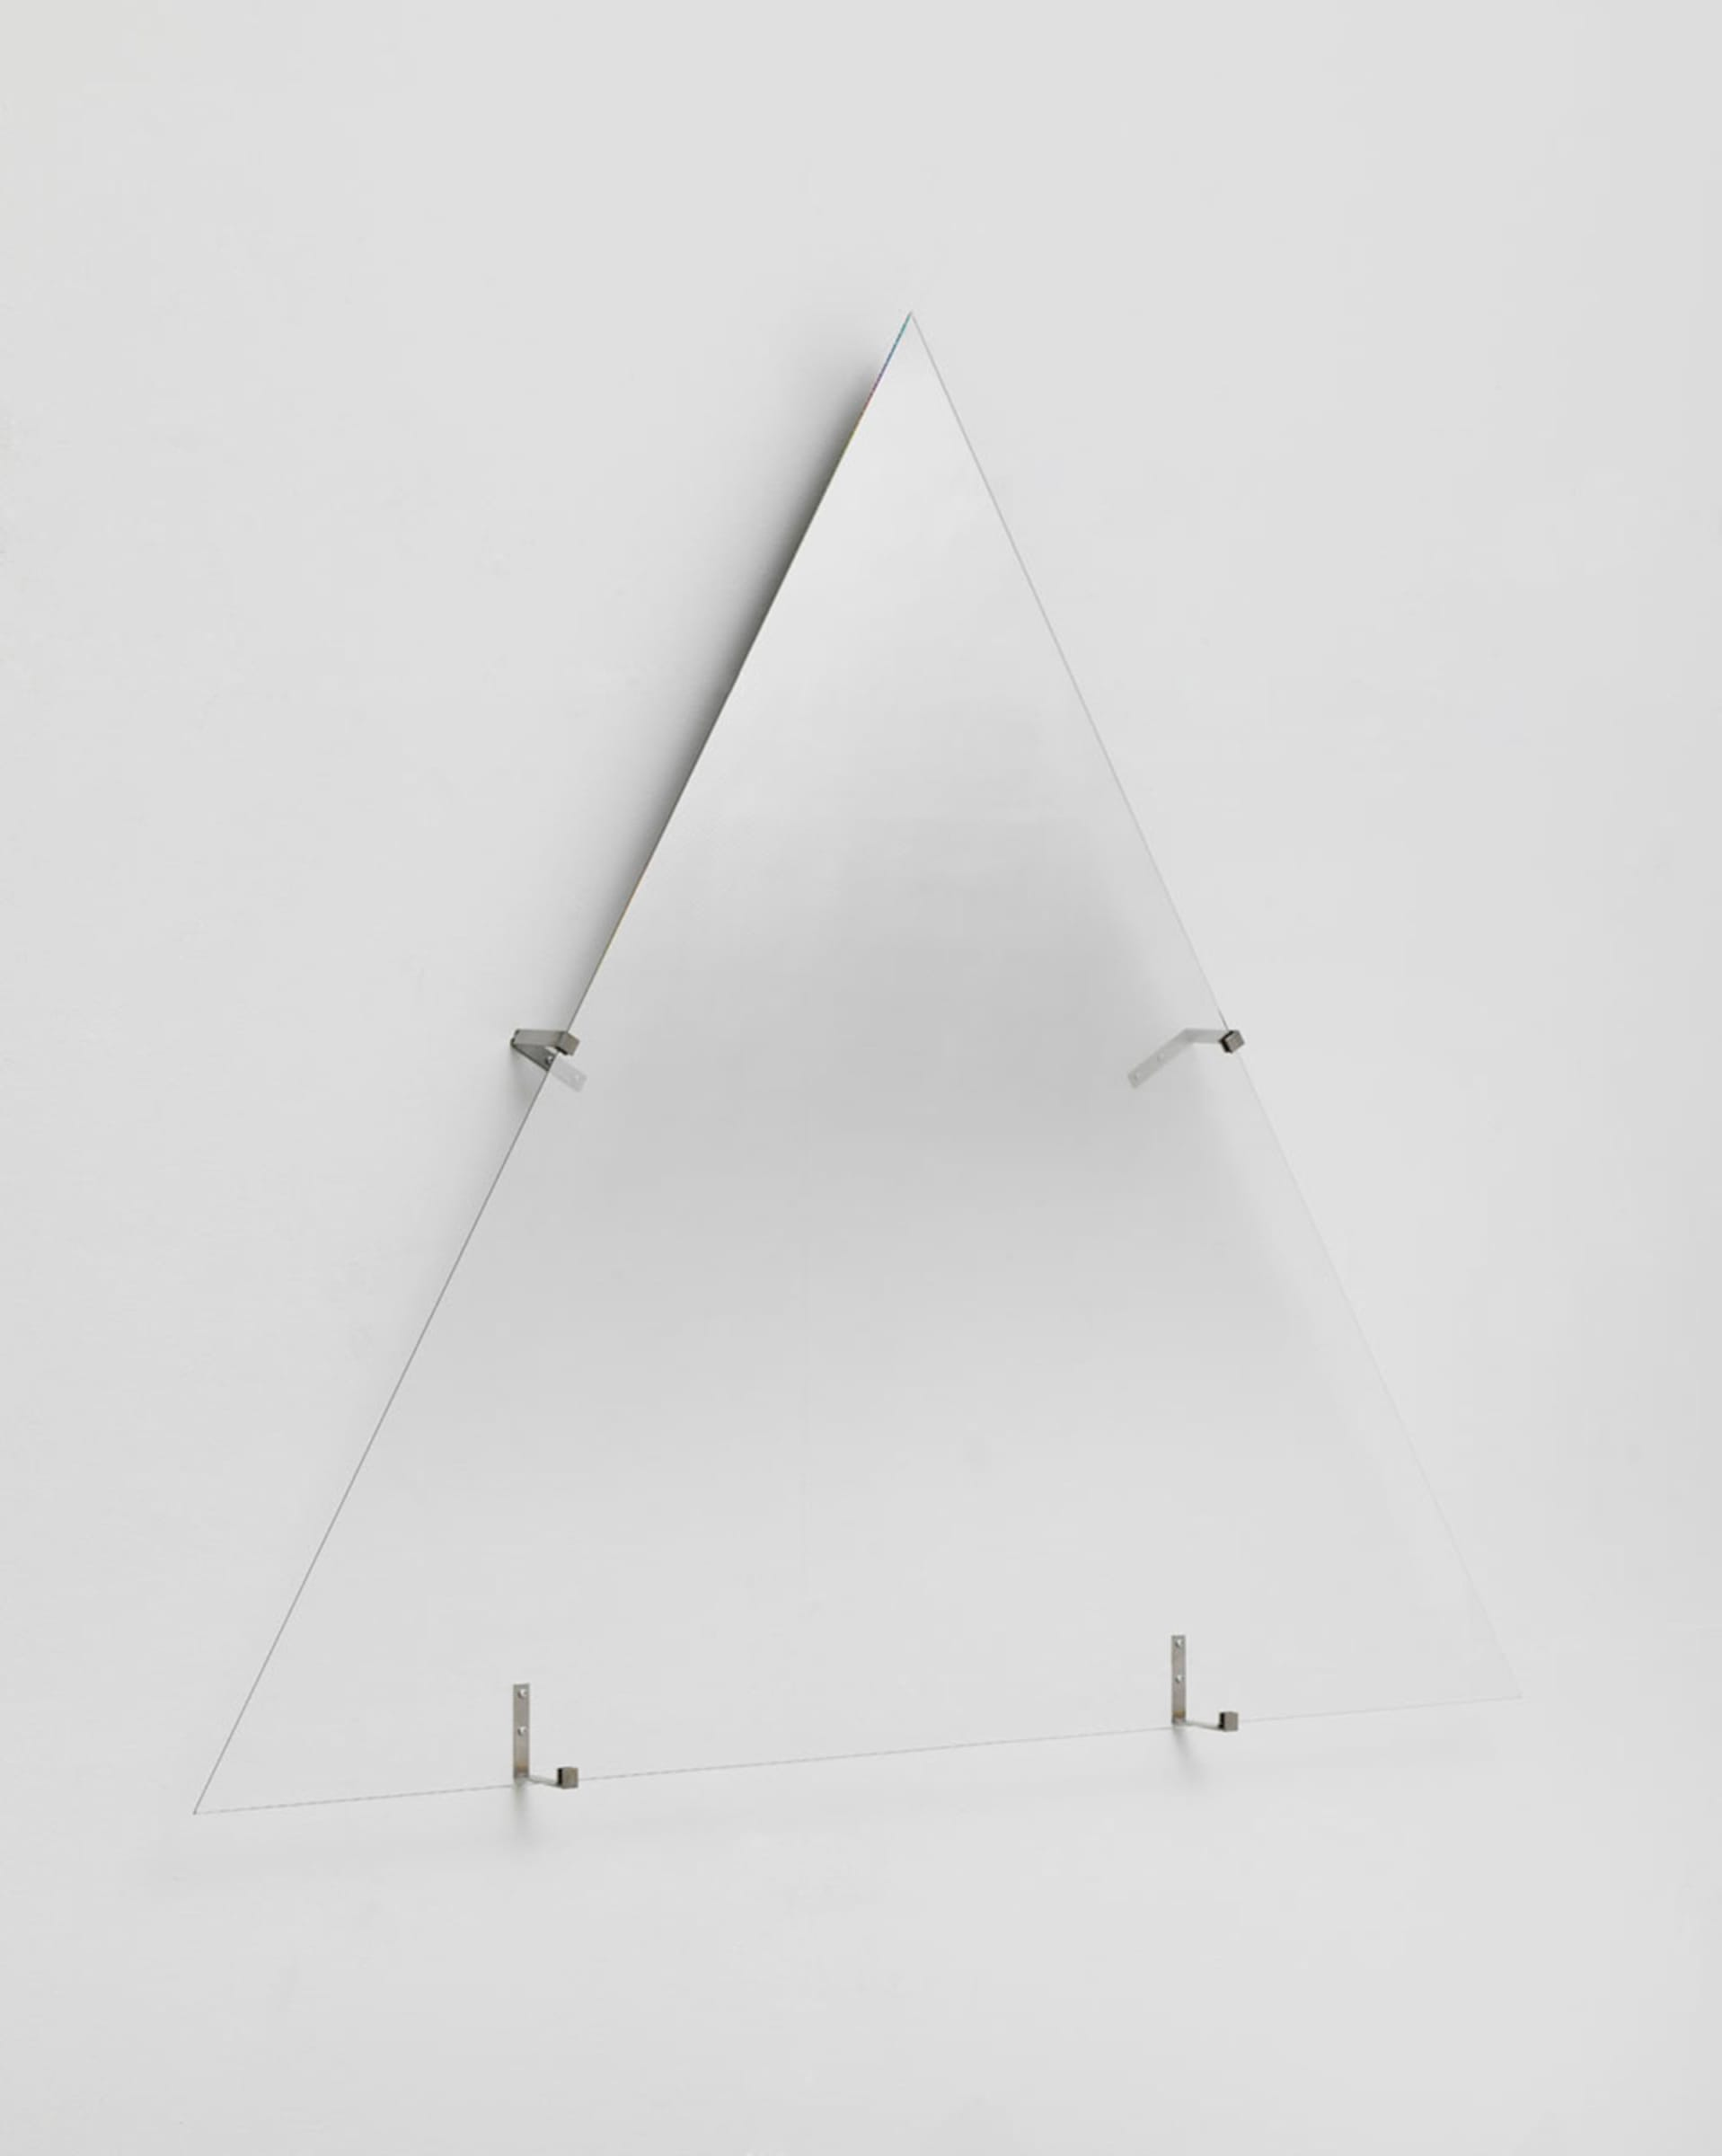 """<span class=""""link fancybox-details-link""""><a href=""""/artists/132-olafur-eliasson/works/9326/"""">View Detail Page</a></span>ÓLAFUR ELÍASSON   Hesitant movement up, 2013   partially silvered glass, stainless steel   130 x 150 x 8 cm"""